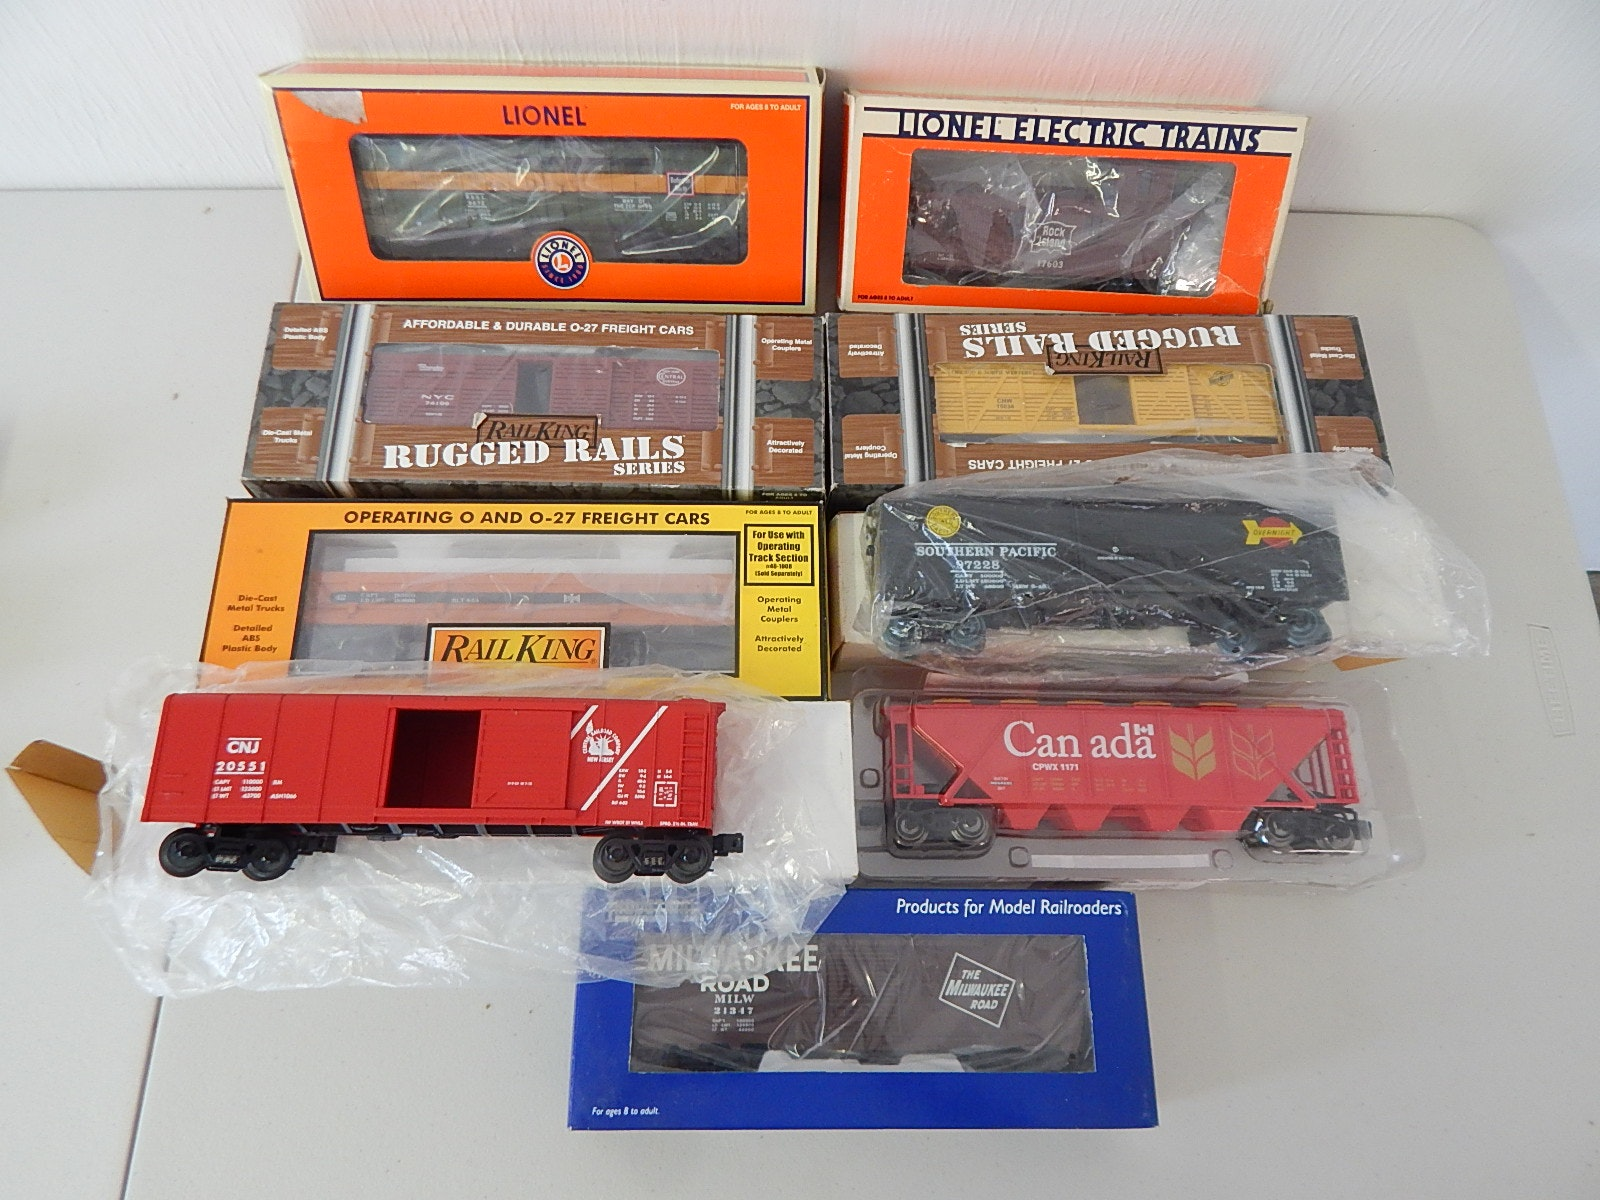 Nine O-Gauge Train Cars with Lionel, Rail King, Industrial